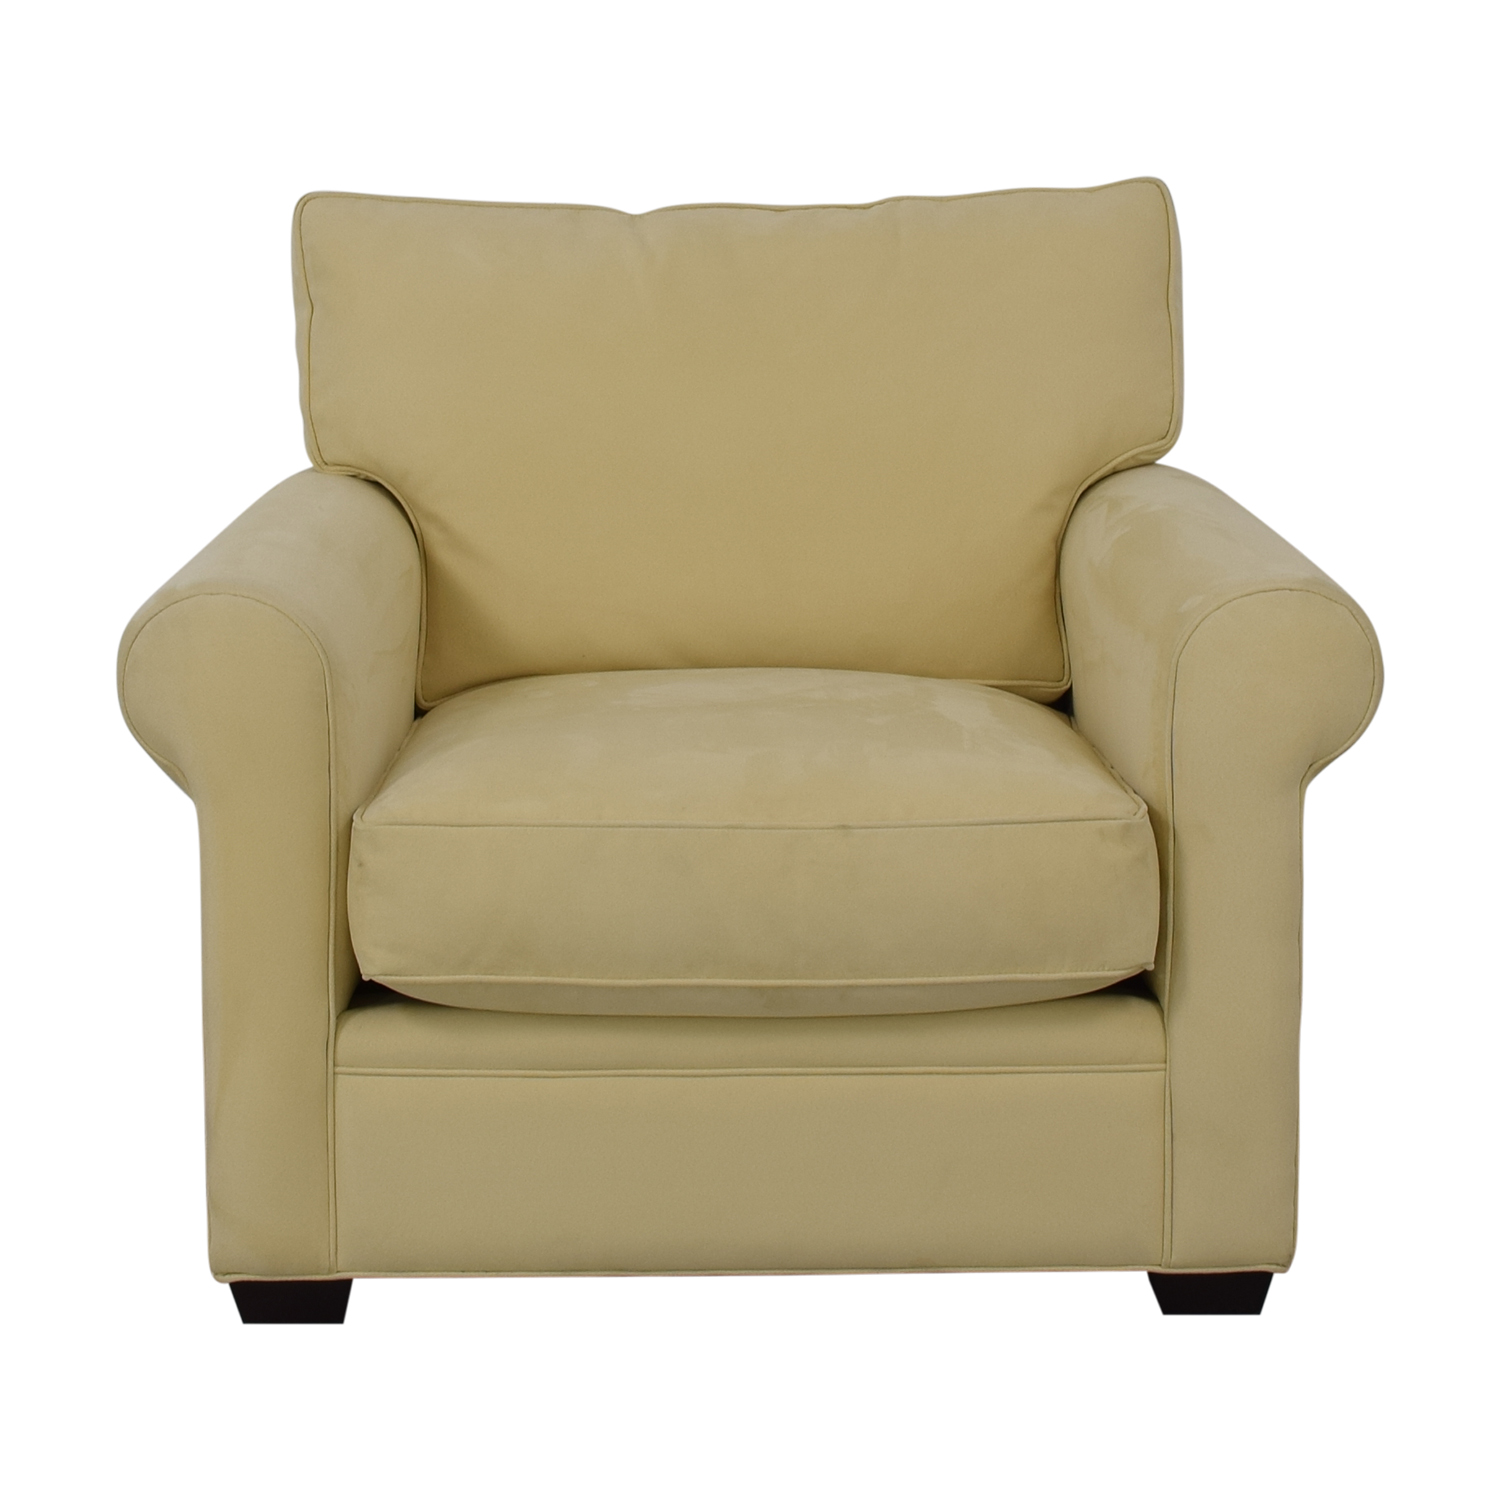 Crate & Barrel Crate & Barrel Yellow Oversized Accent Chair nj